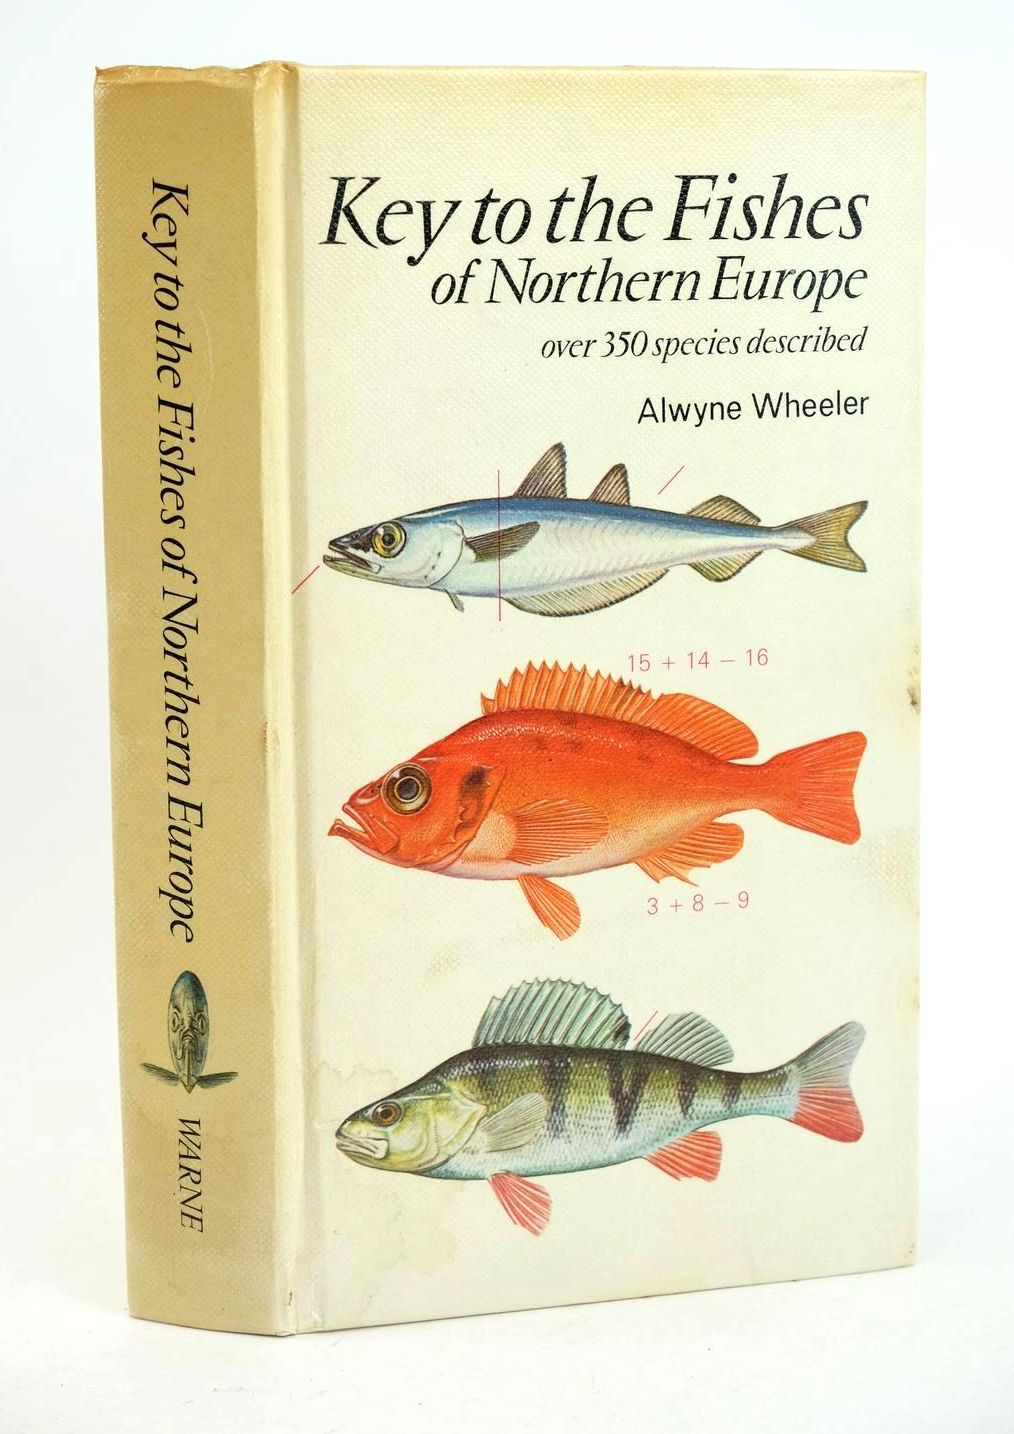 Photo of KEY TO THE FISHES OF NORTHERN EUROPE written by Wheeler, Alwyne illustrated by Stebbing, Peter Fraser, F. Rodney published by Frederick Warne (Publishers) Ltd. (STOCK CODE: 1318661)  for sale by Stella & Rose's Books